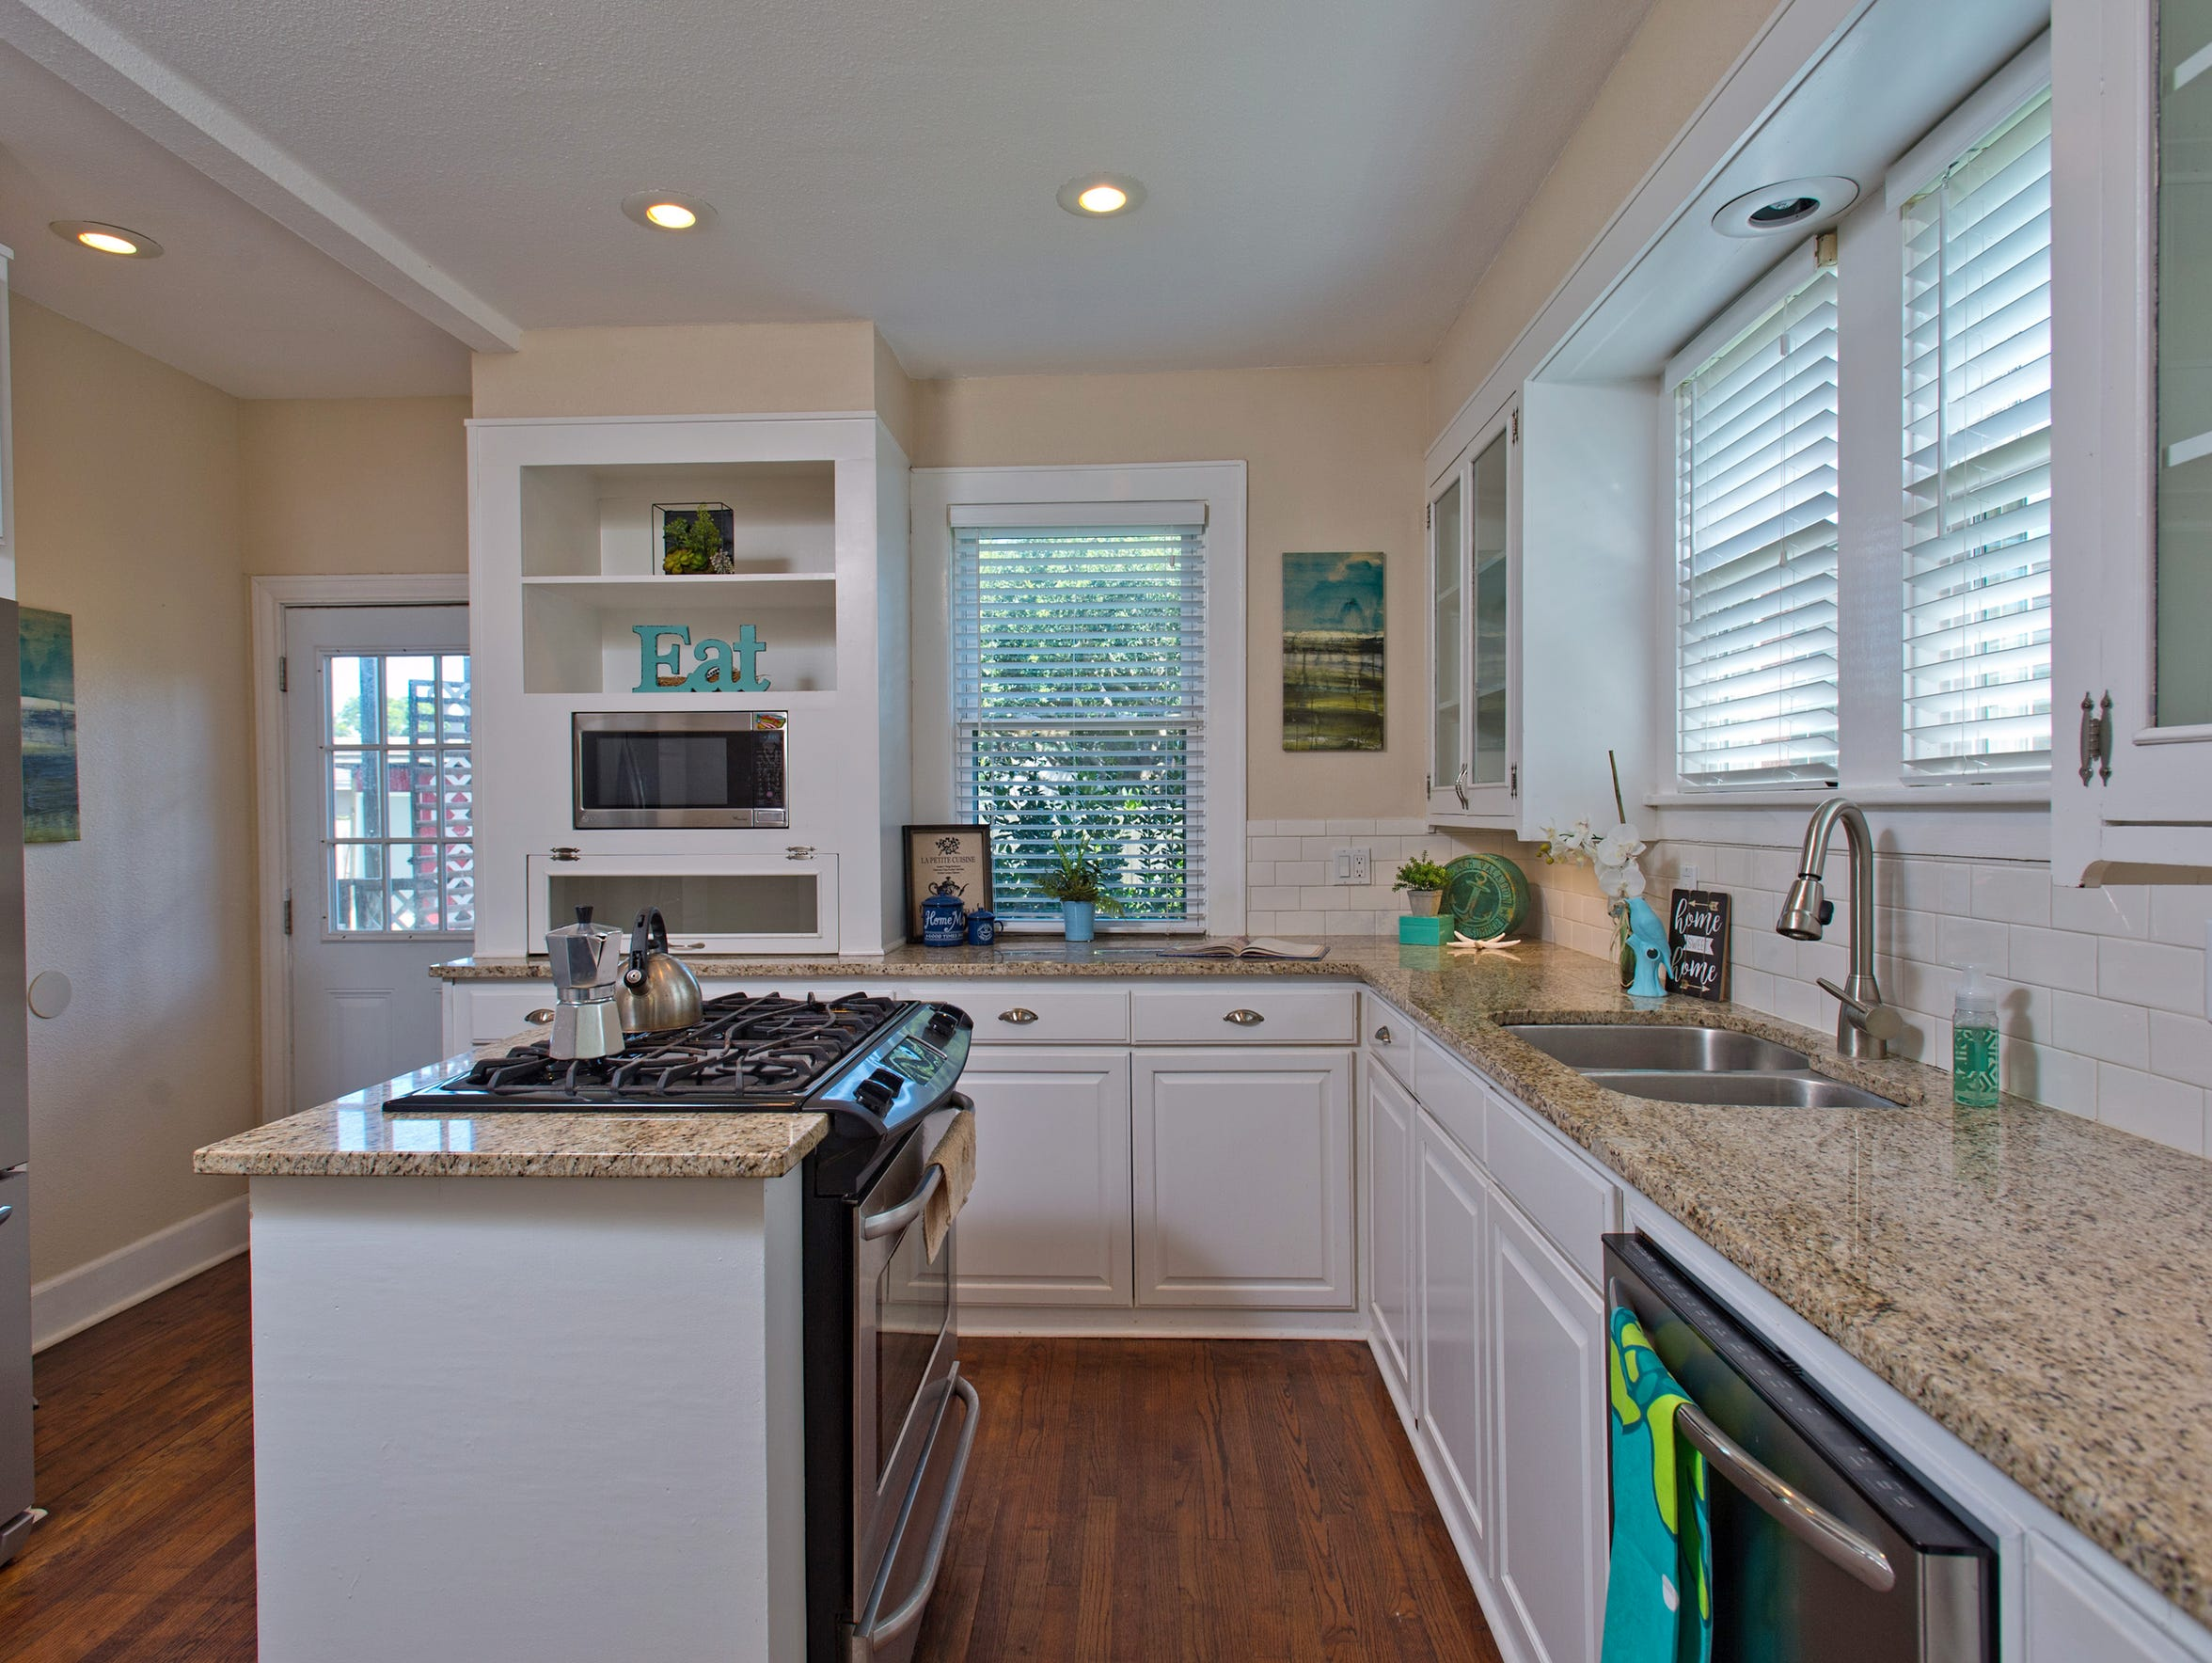 The hardwood floors extend into the kitchen which features